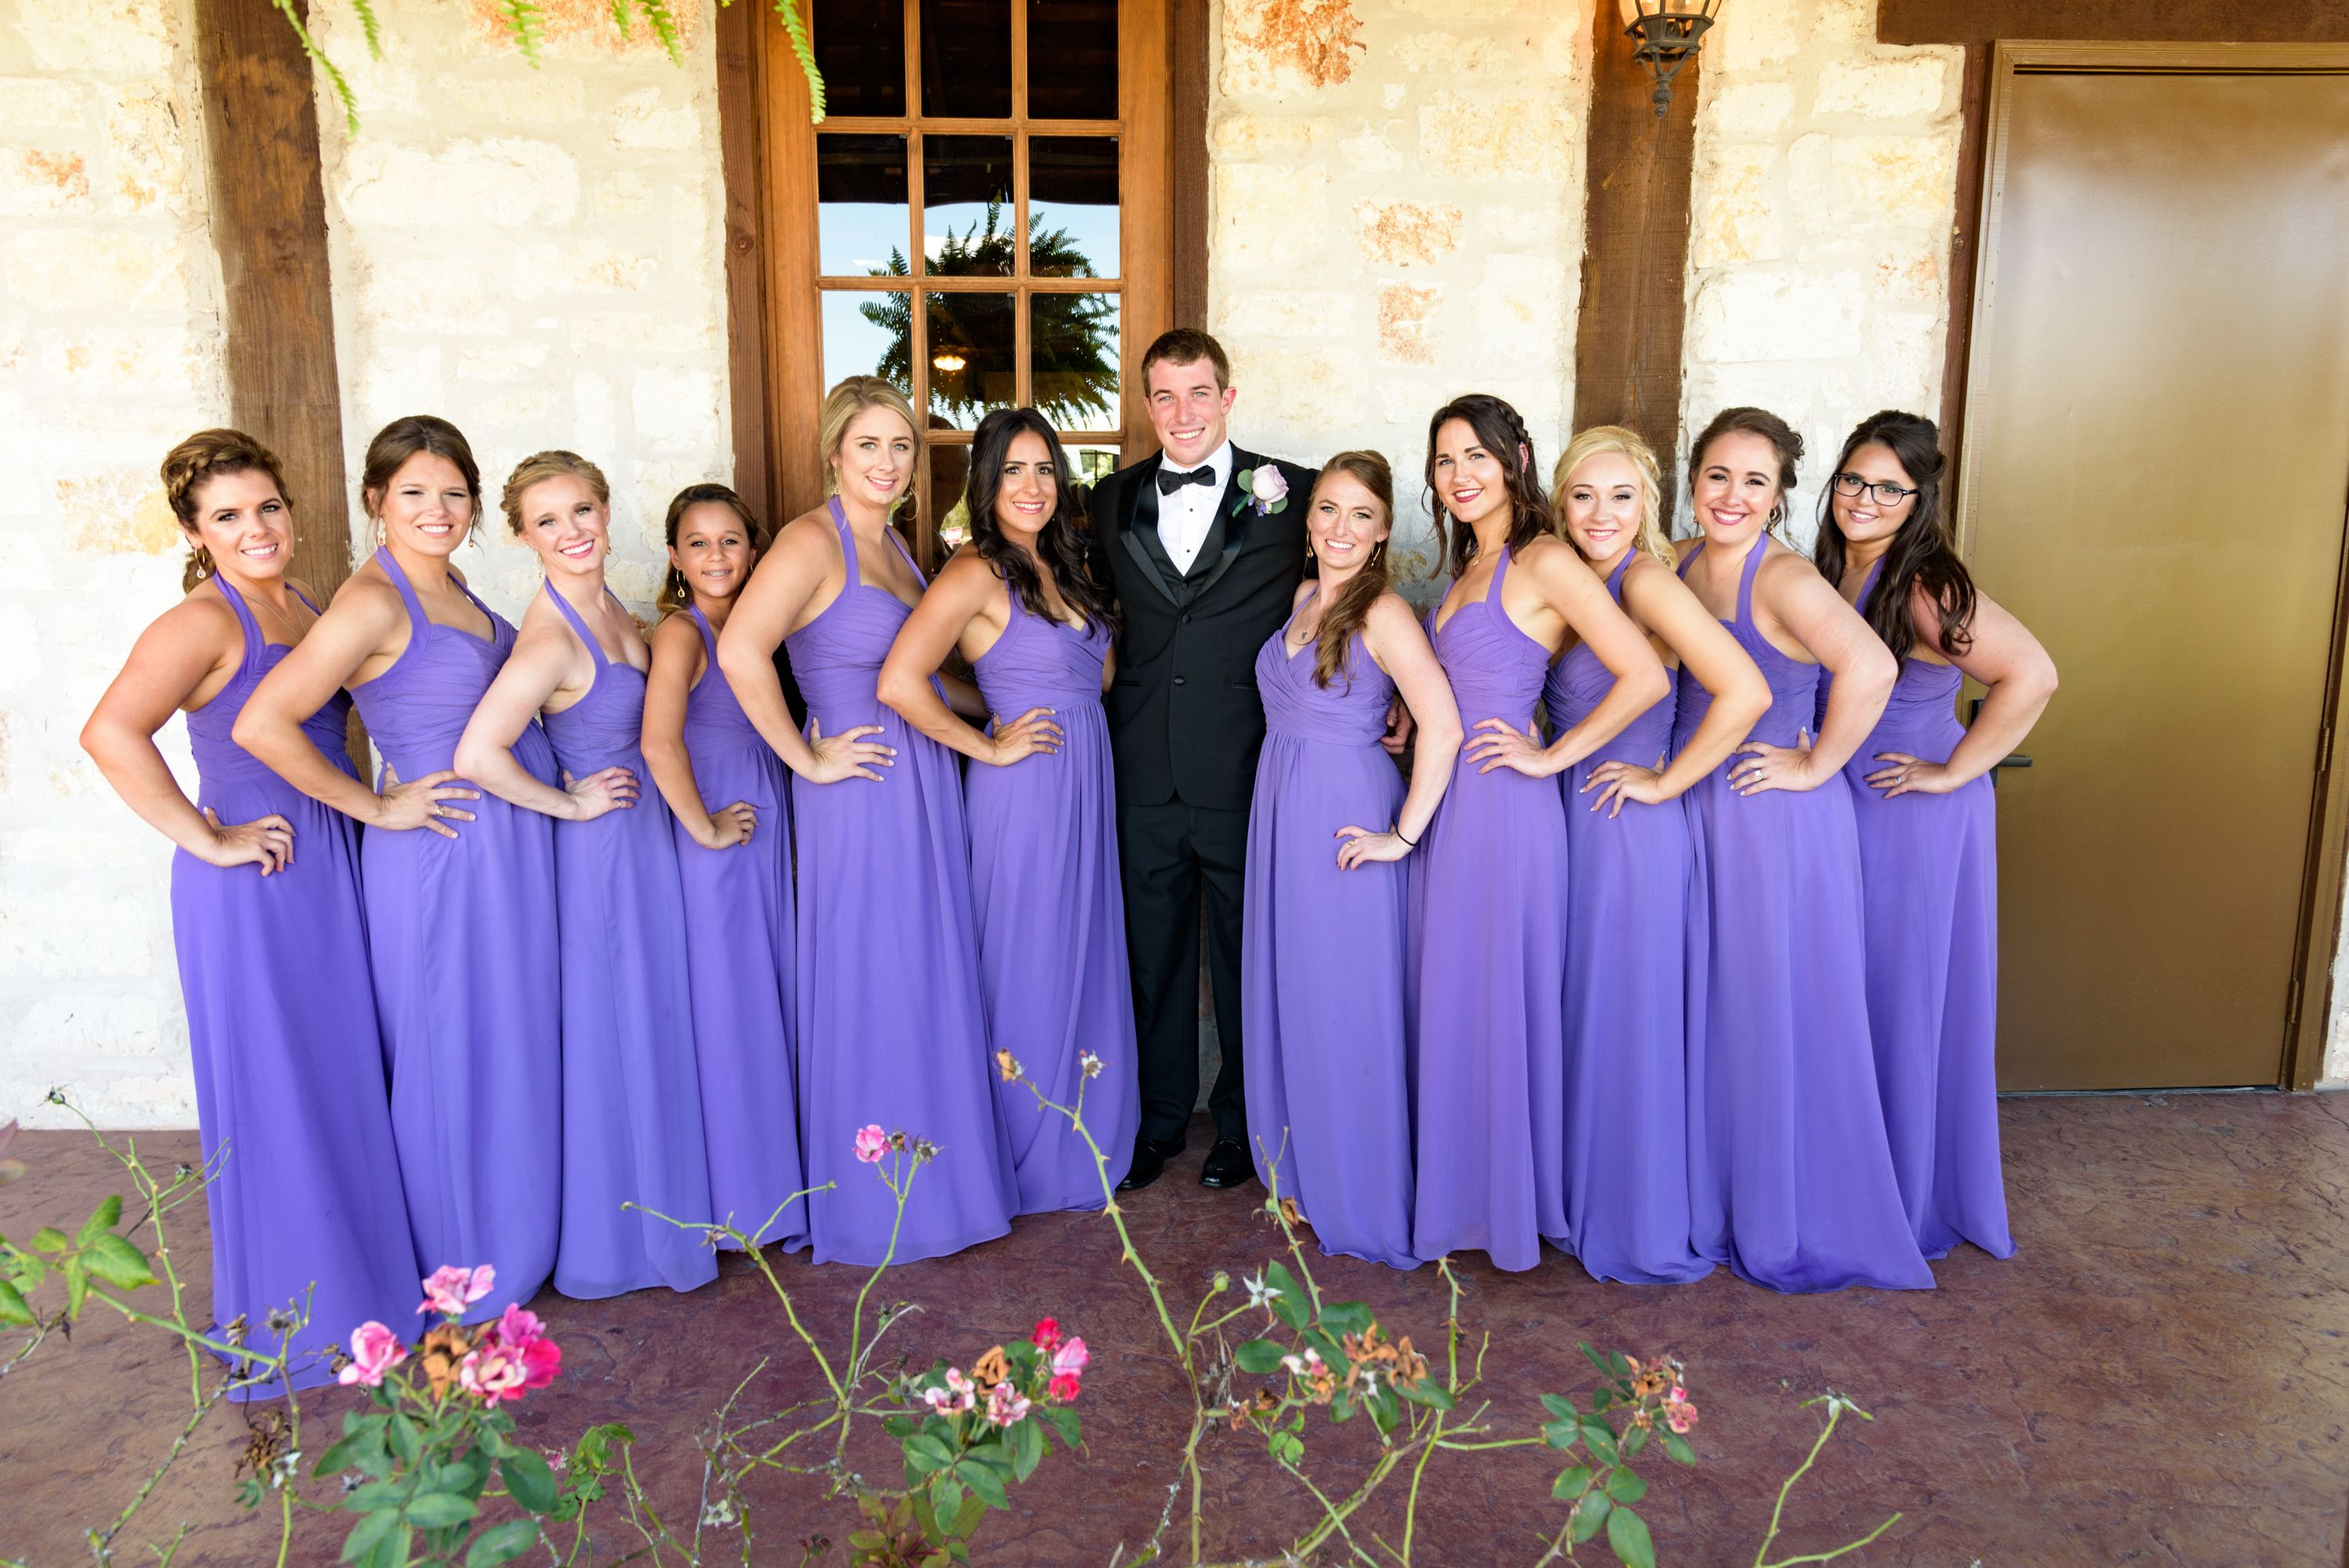 THE SPRINGS in Katy | Tuscany, Hall and Wedding venues